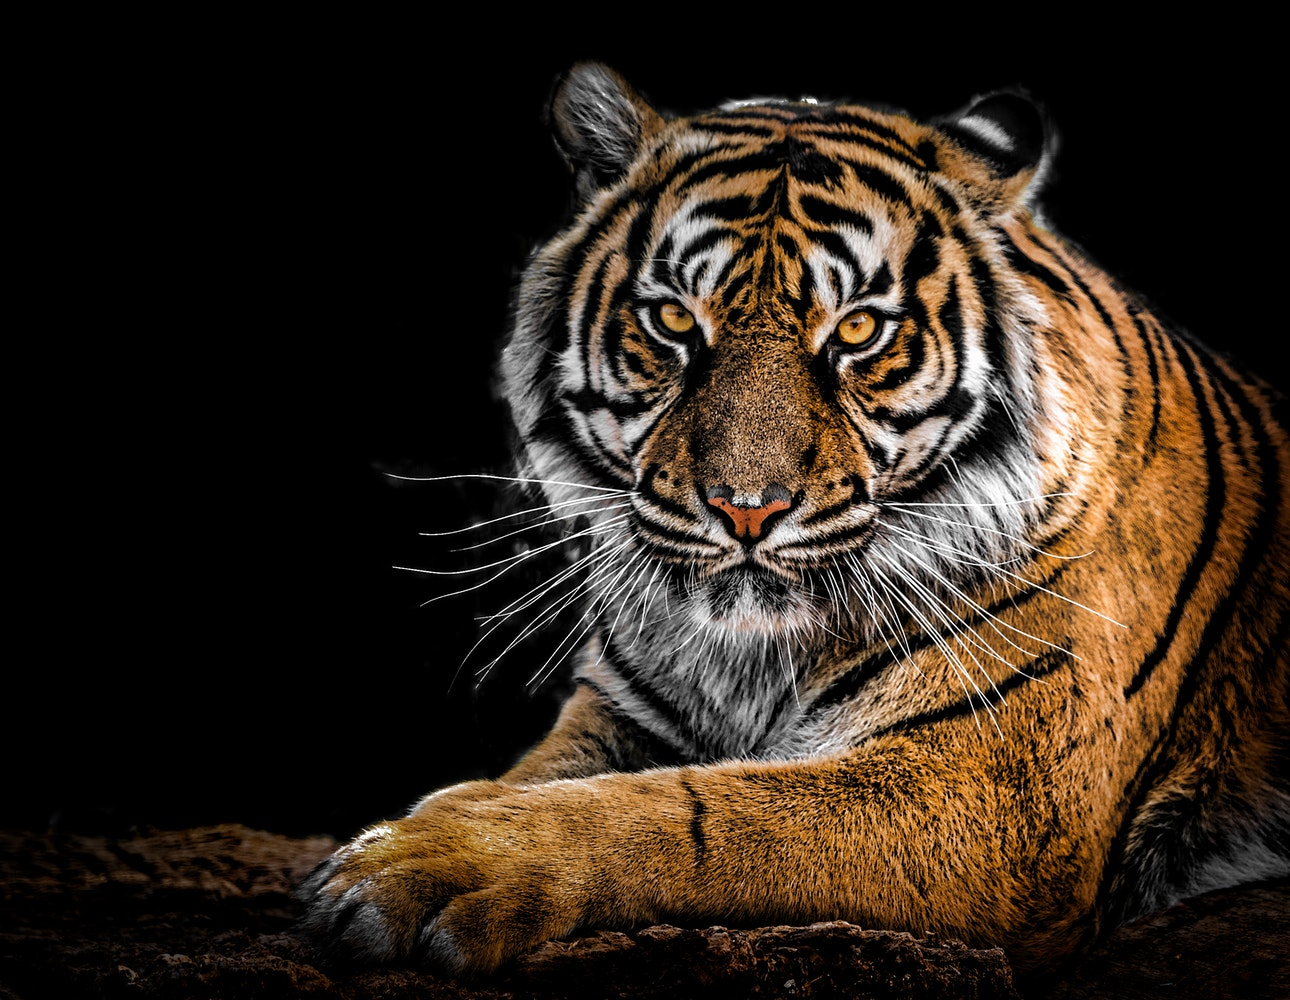 77 Majestic Tiger Pictures Pexels Free Stock Photos